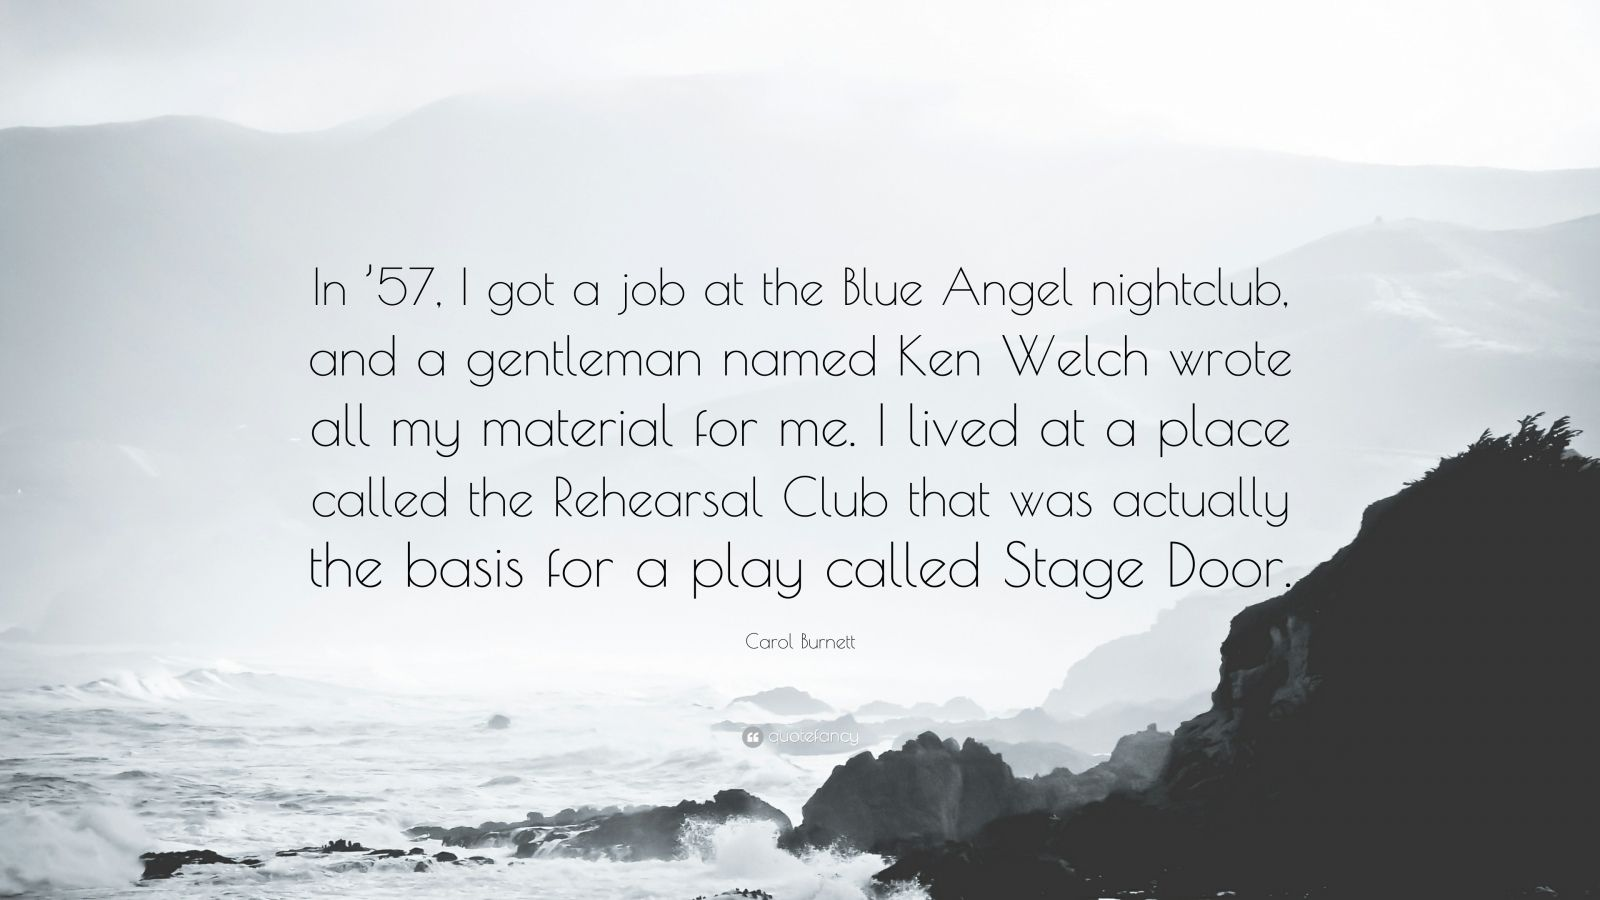 """Carol Burnett Quote: """"In '57, I got a job at the Blue Angel nightclub, and a gentleman named Ken Welch wrote all my material for me. I lived at a place called the Rehearsal Club that was actually the basis for a play called Stage Door."""""""